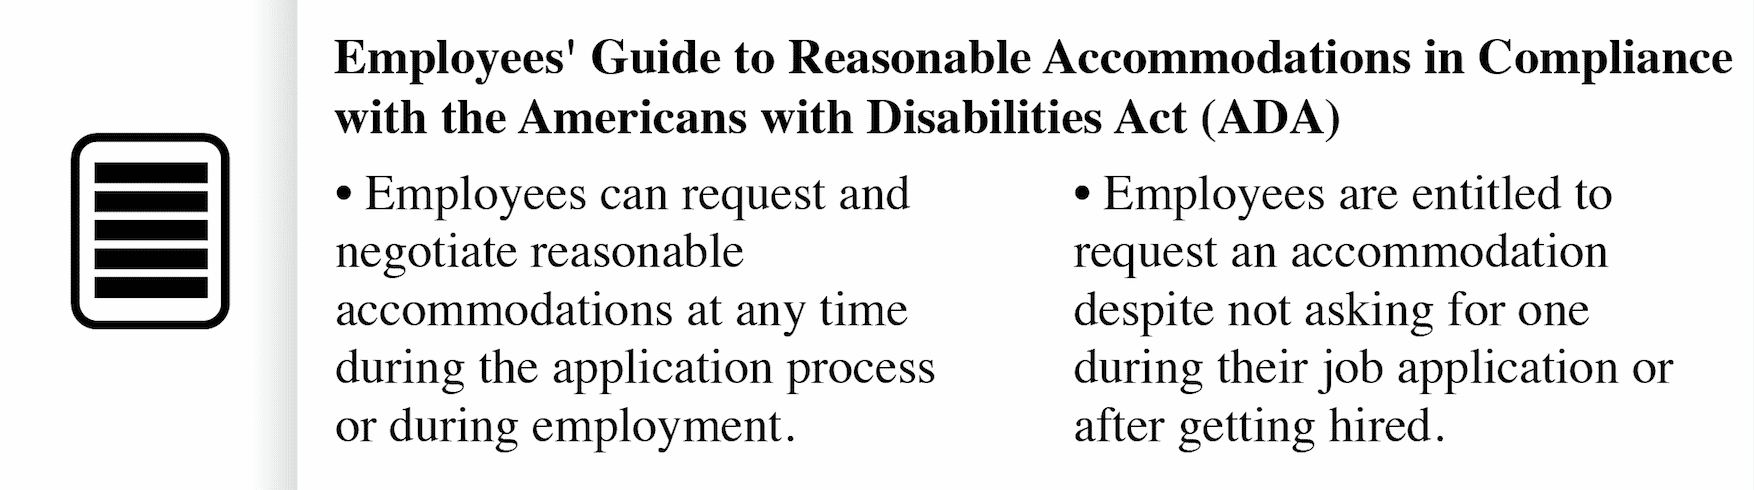 South Miami Americans with Disabilities Act Claim or Lawsuit